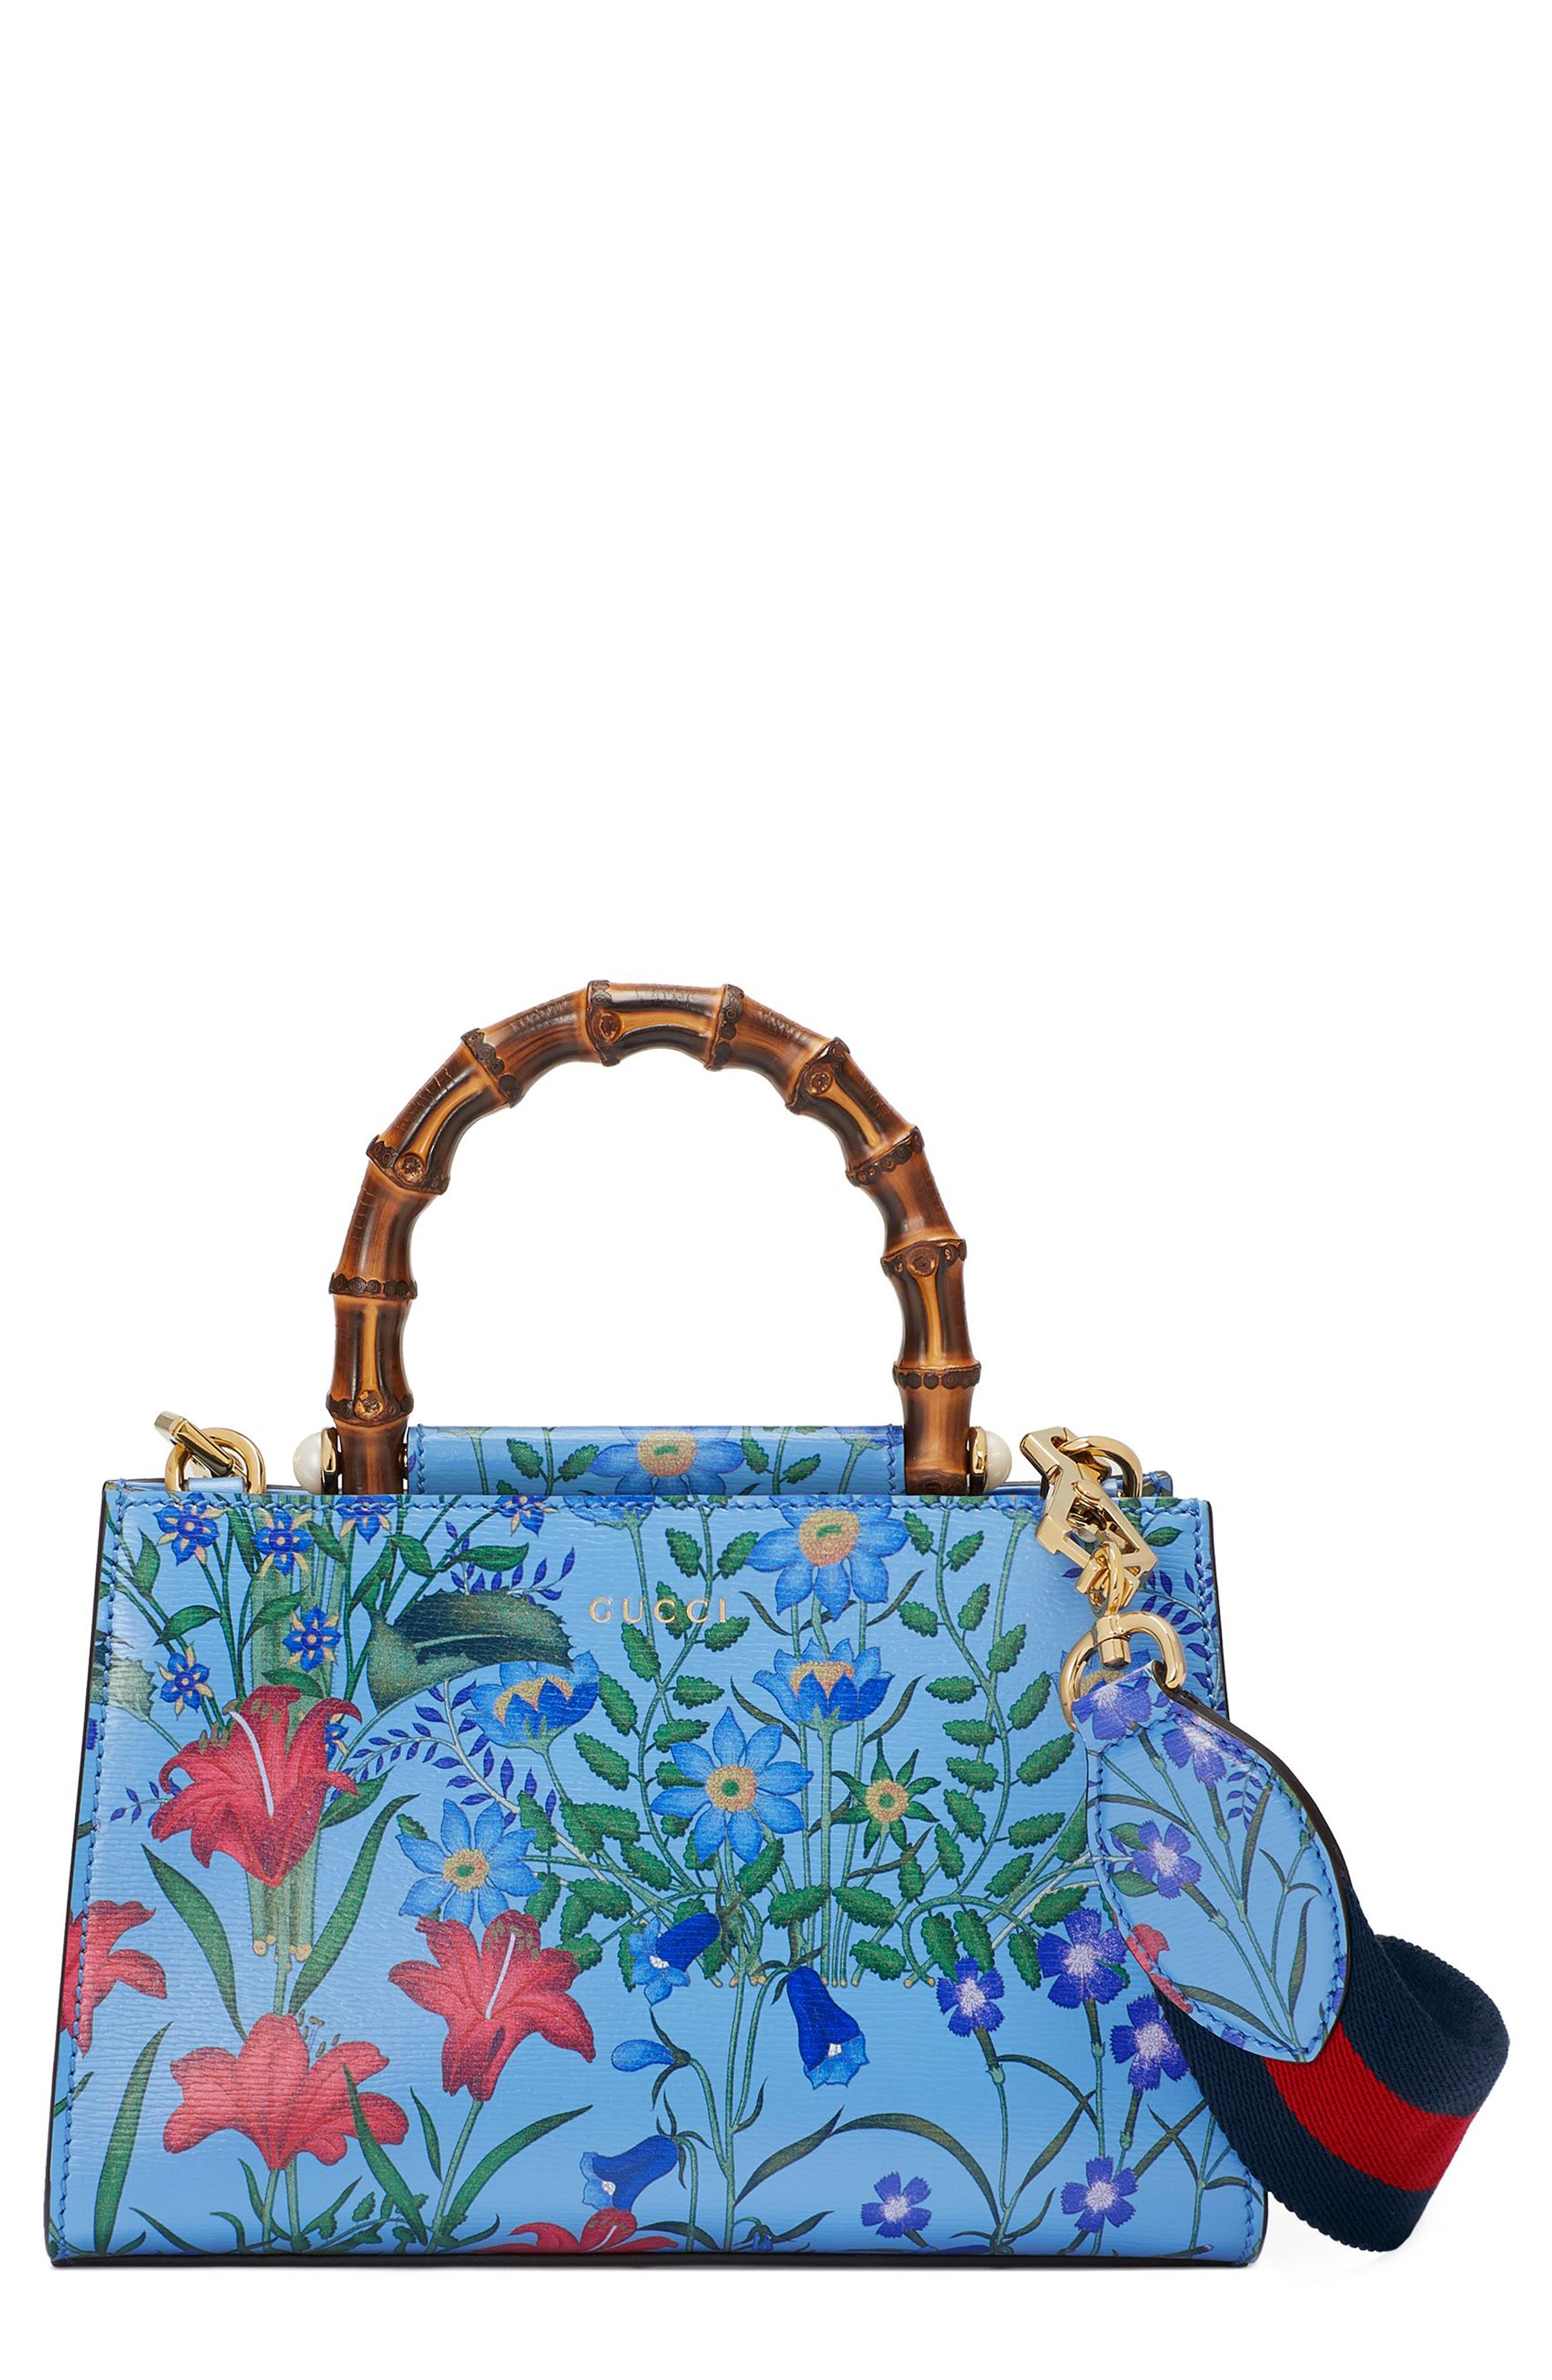 Alternate Image 1 Selected - Gucci Mini Nymphea Leather Top Handle Satchel